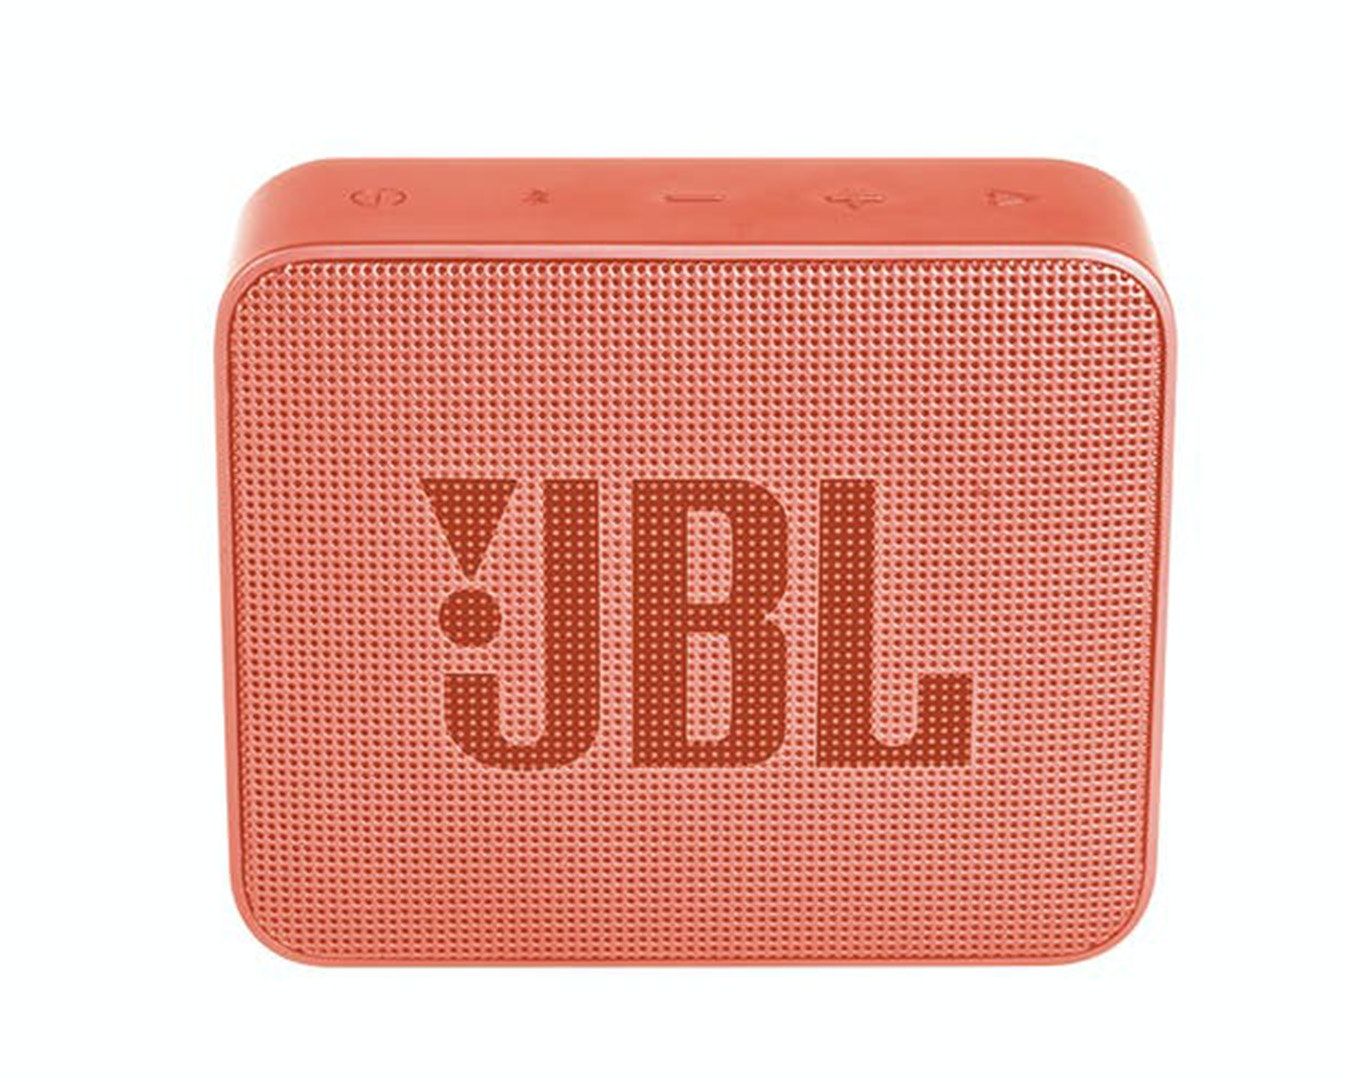 a coral pink portable speaker.